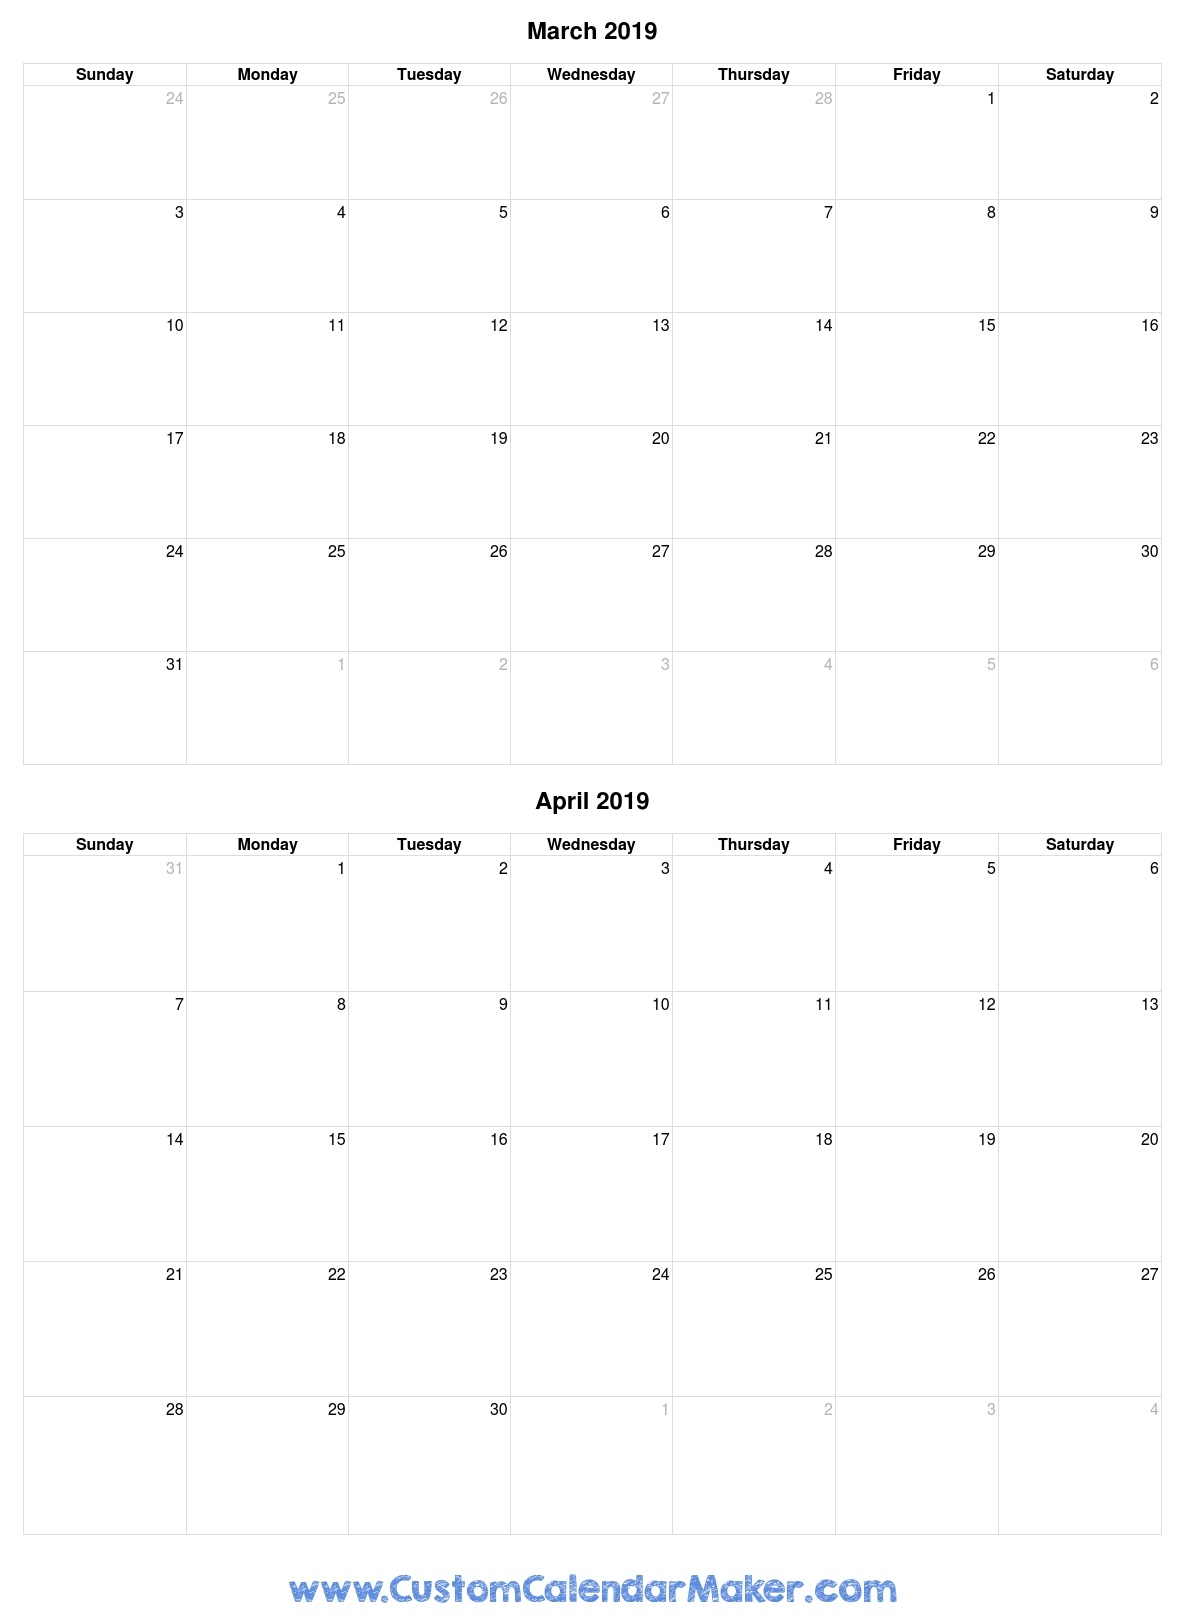 Calendar 2019 March April With Notes